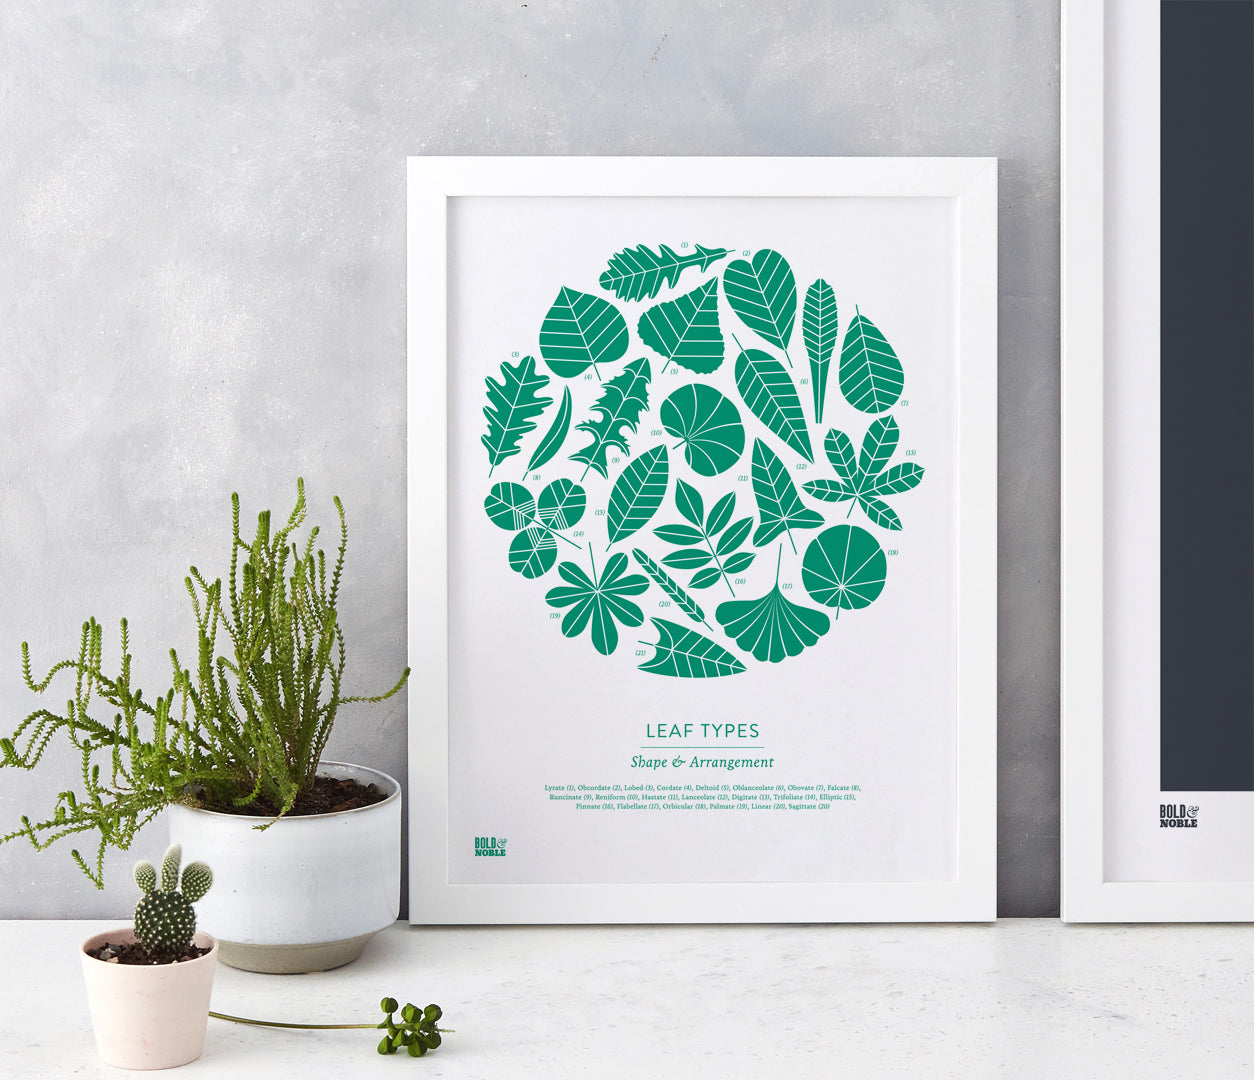 Wall Art ideas: Economical Screen Prints, Leaf Types Print in Emerald Green